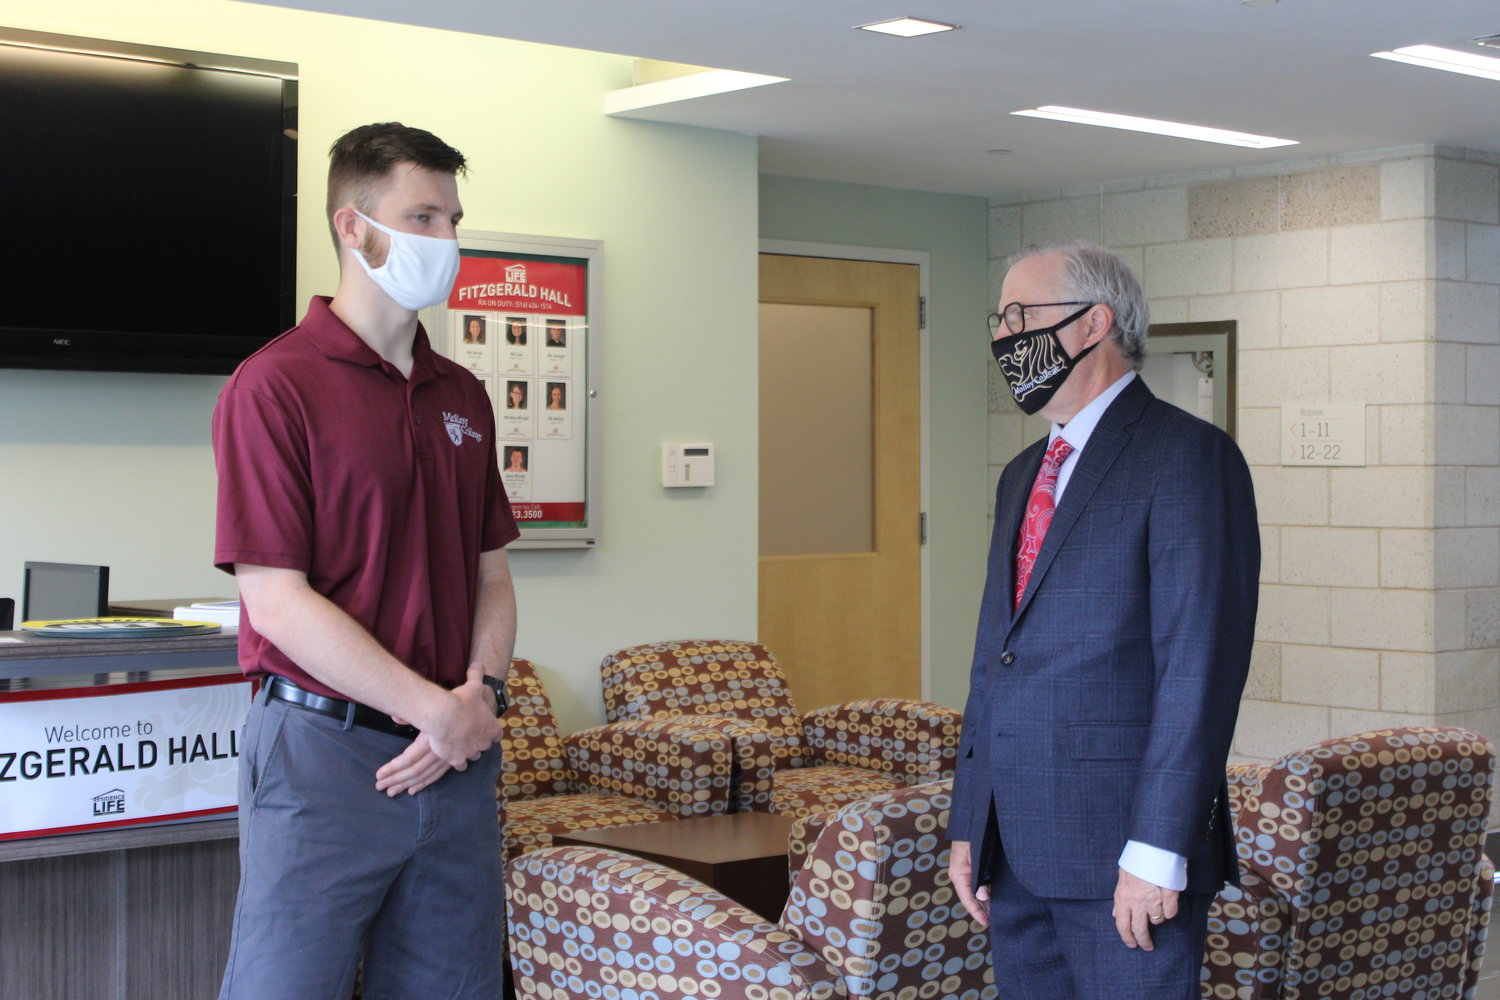 Jack Ryan, a student ambassador and resident assistant at Molloy College, left, and President Jim Lentini spoke about the changes Molloy is making to ensure health and safety when students return in the fall.